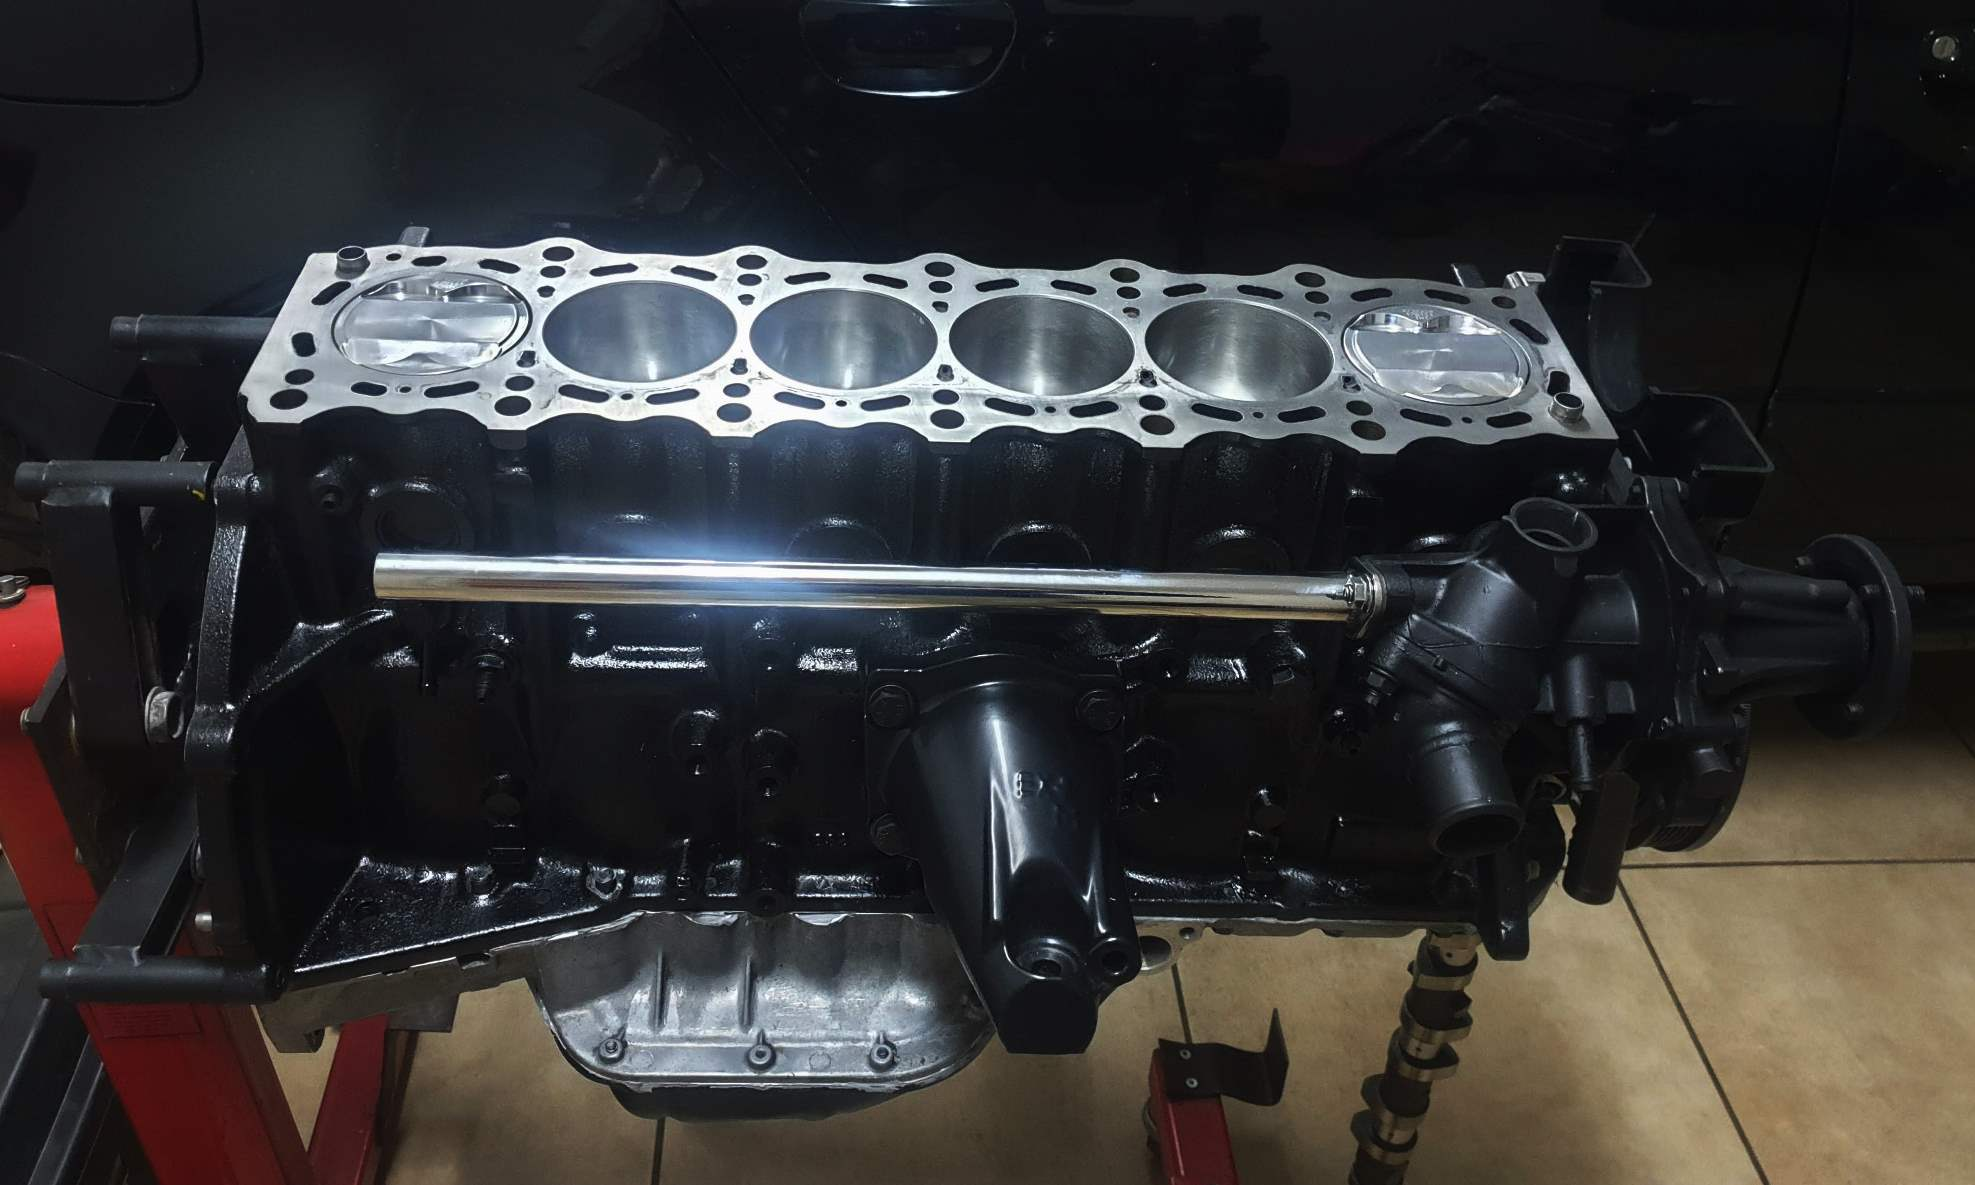 Audi RS2JZ engine rebuild